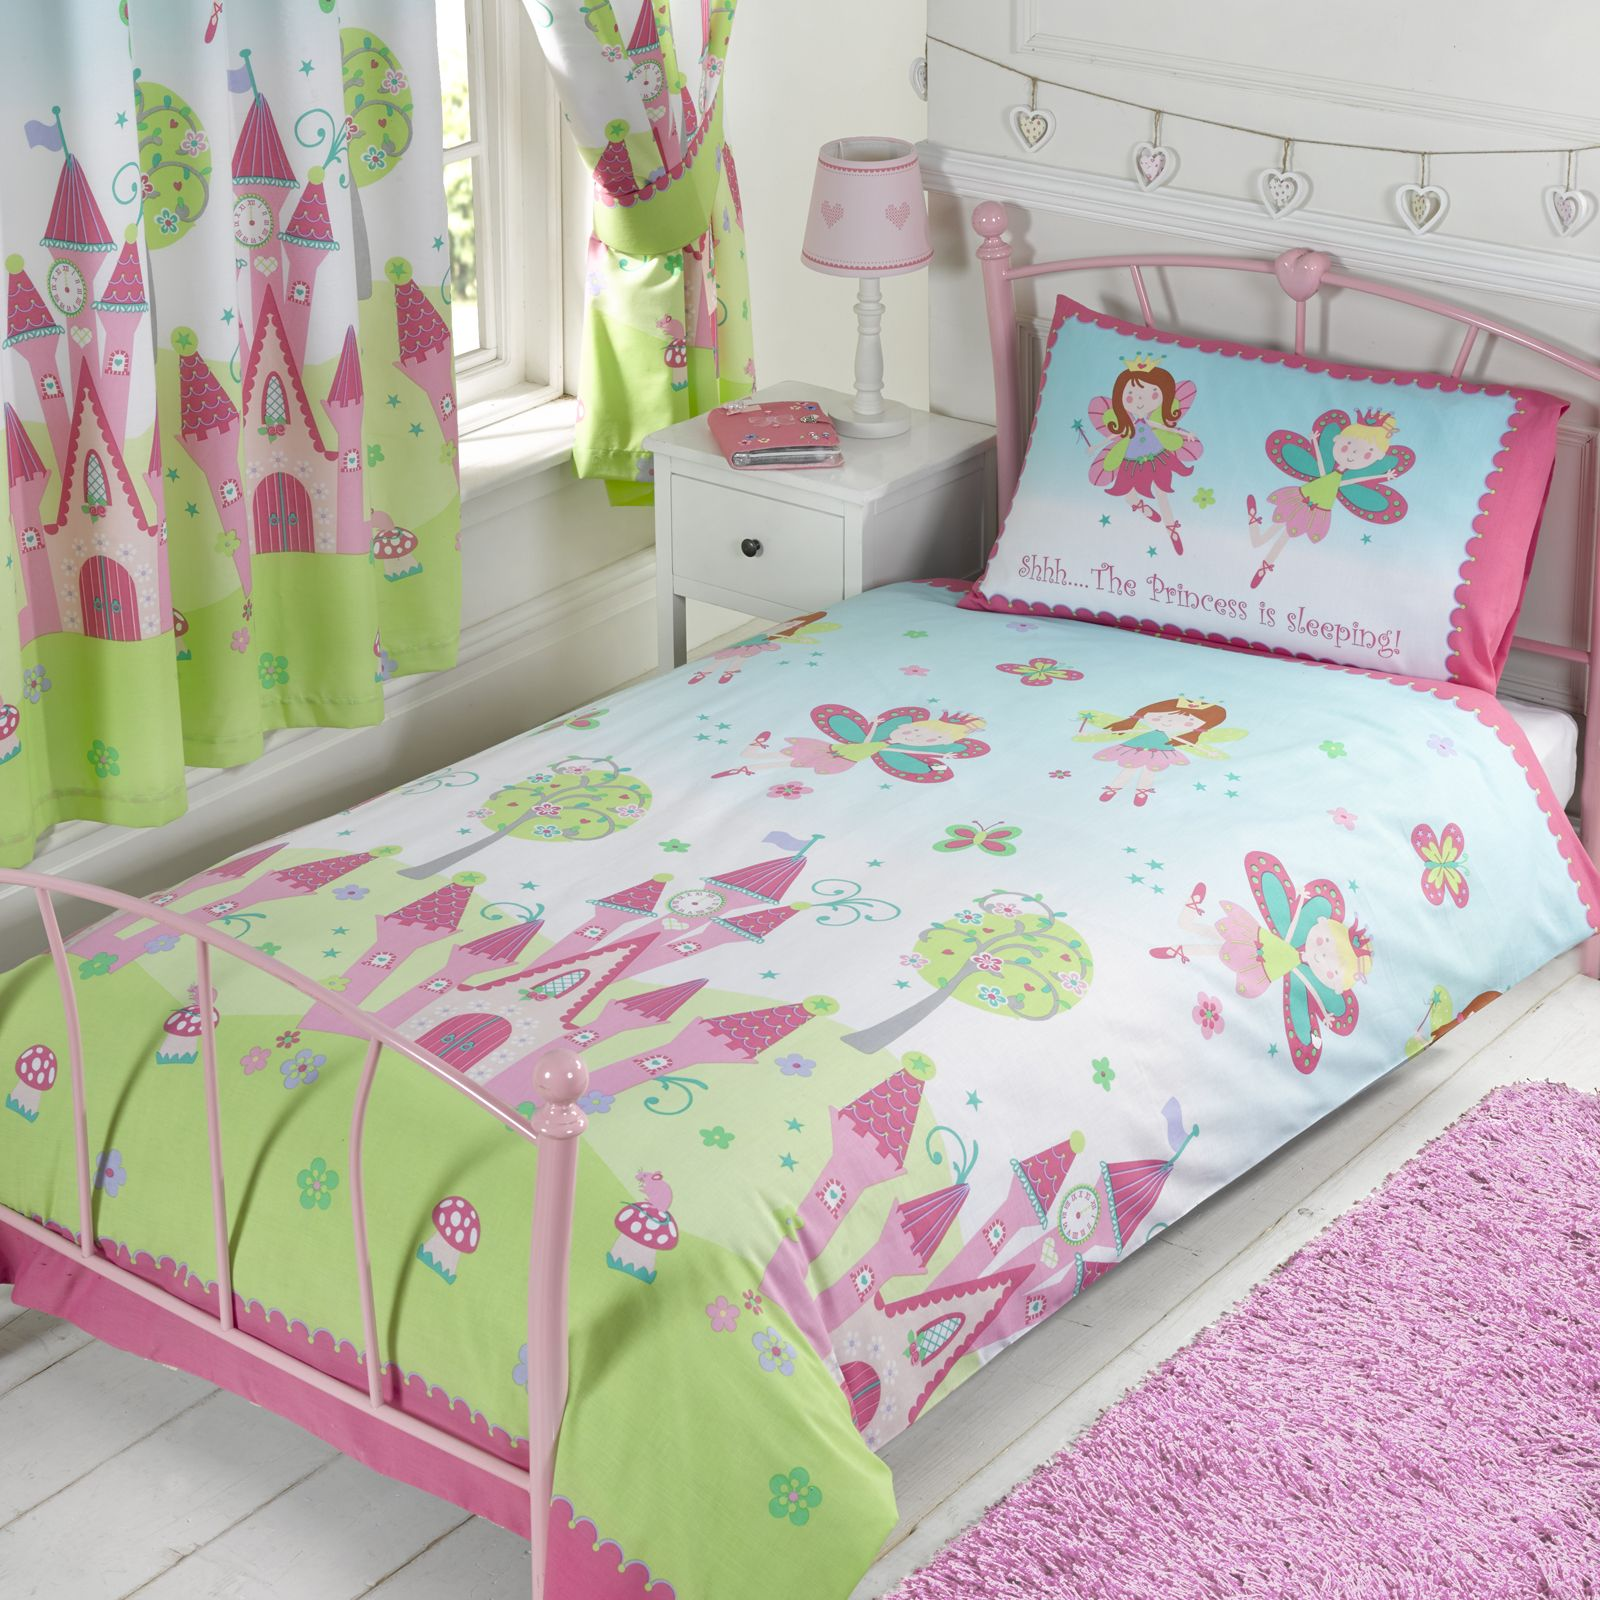 fairy princess 39 sleeping 39 single duvet cover set new girls